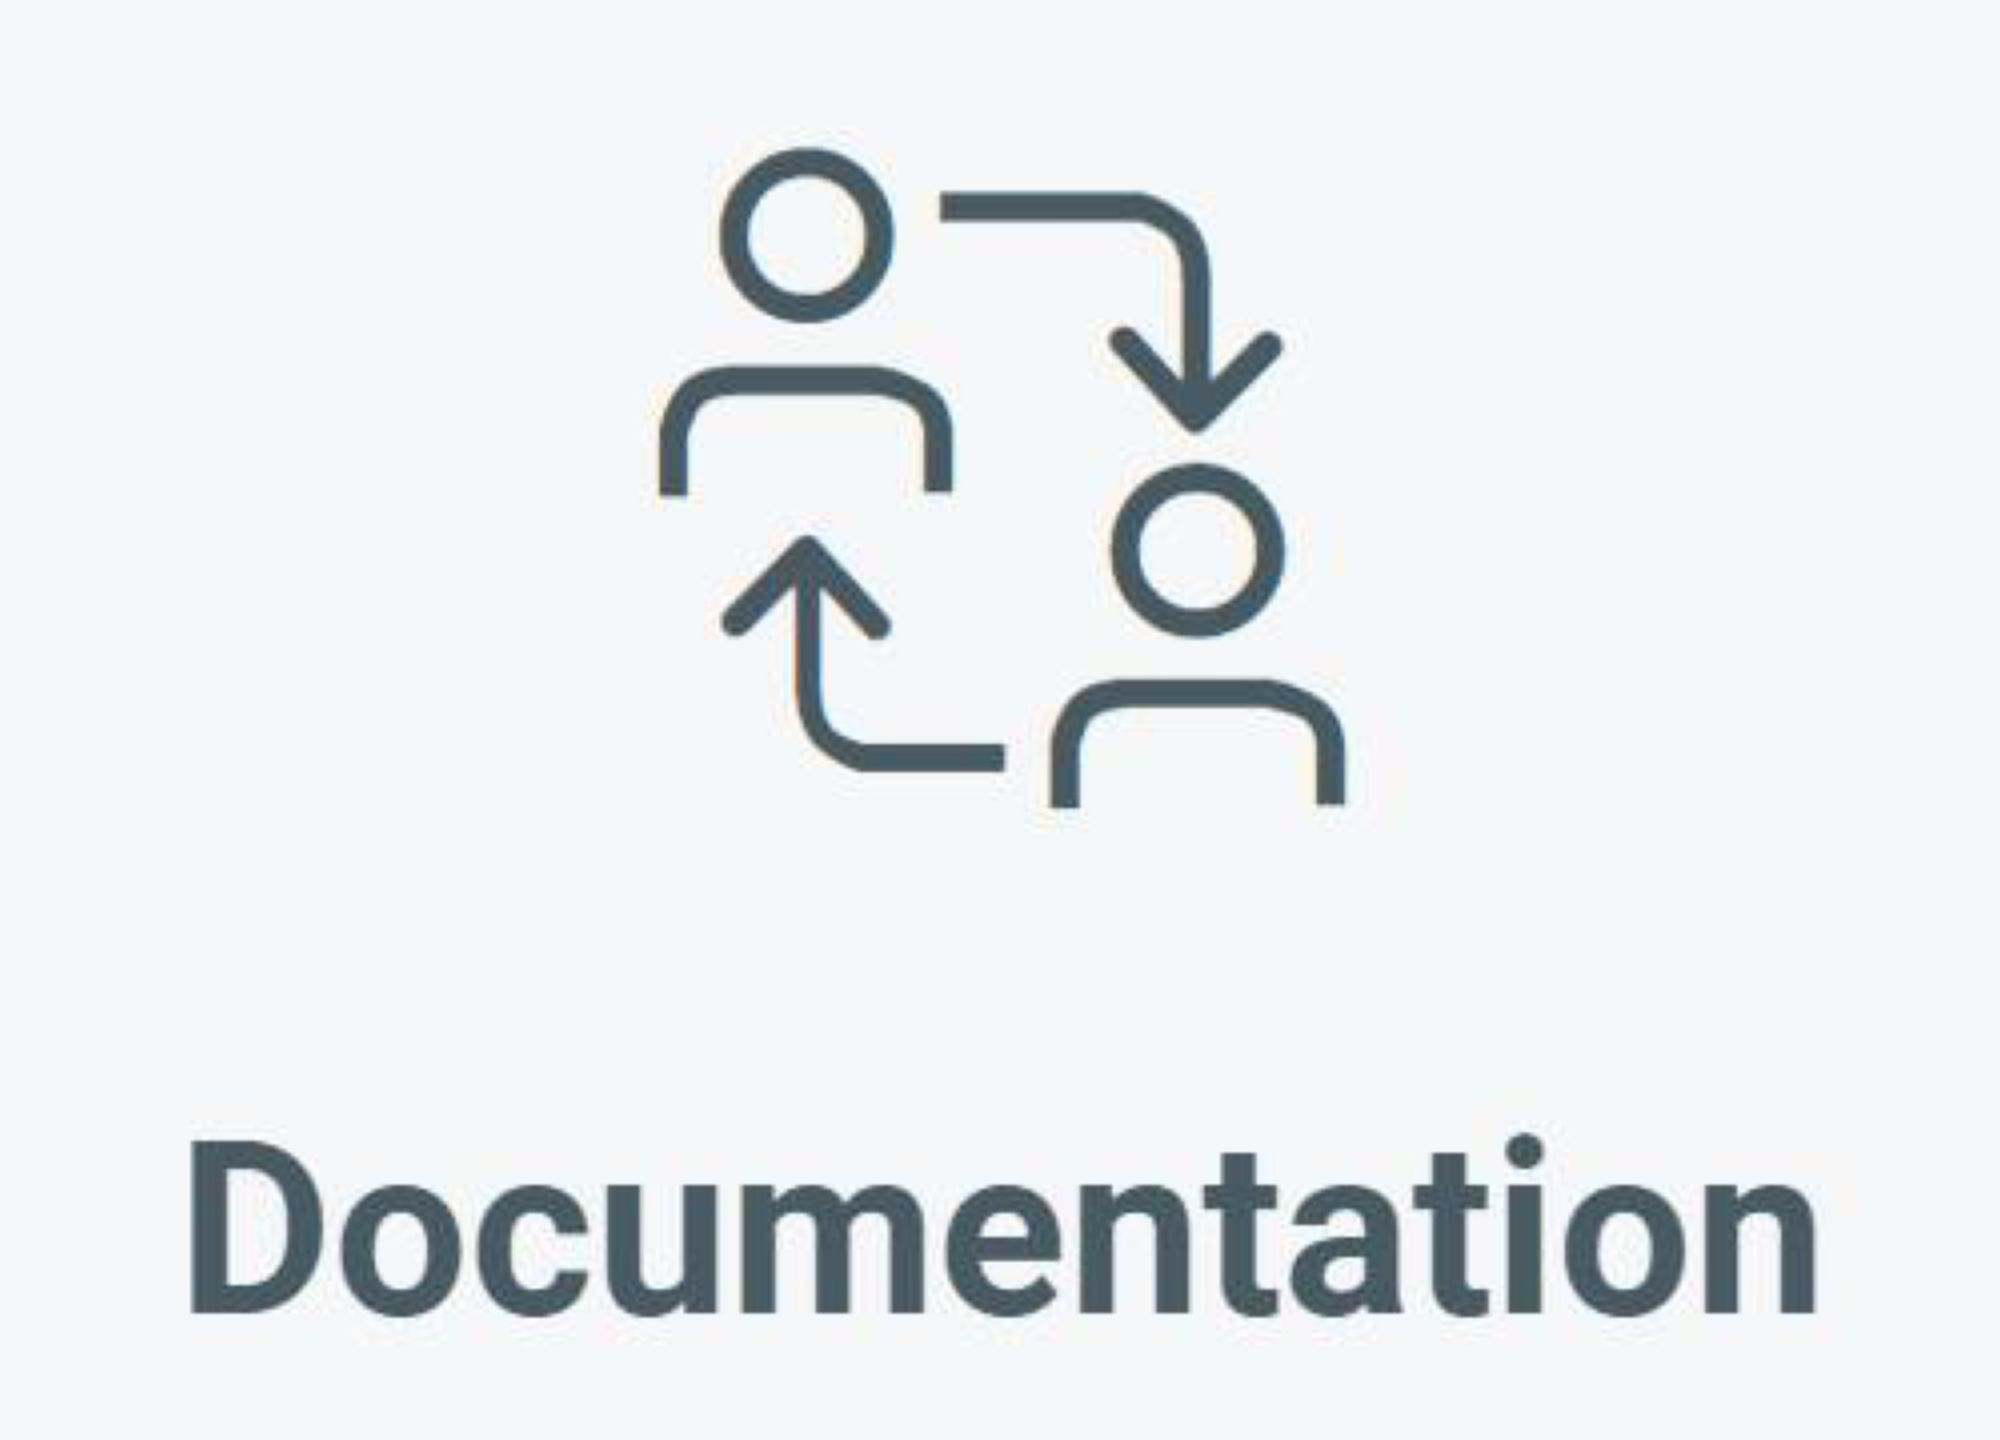 validation-documentation-icon.jpg